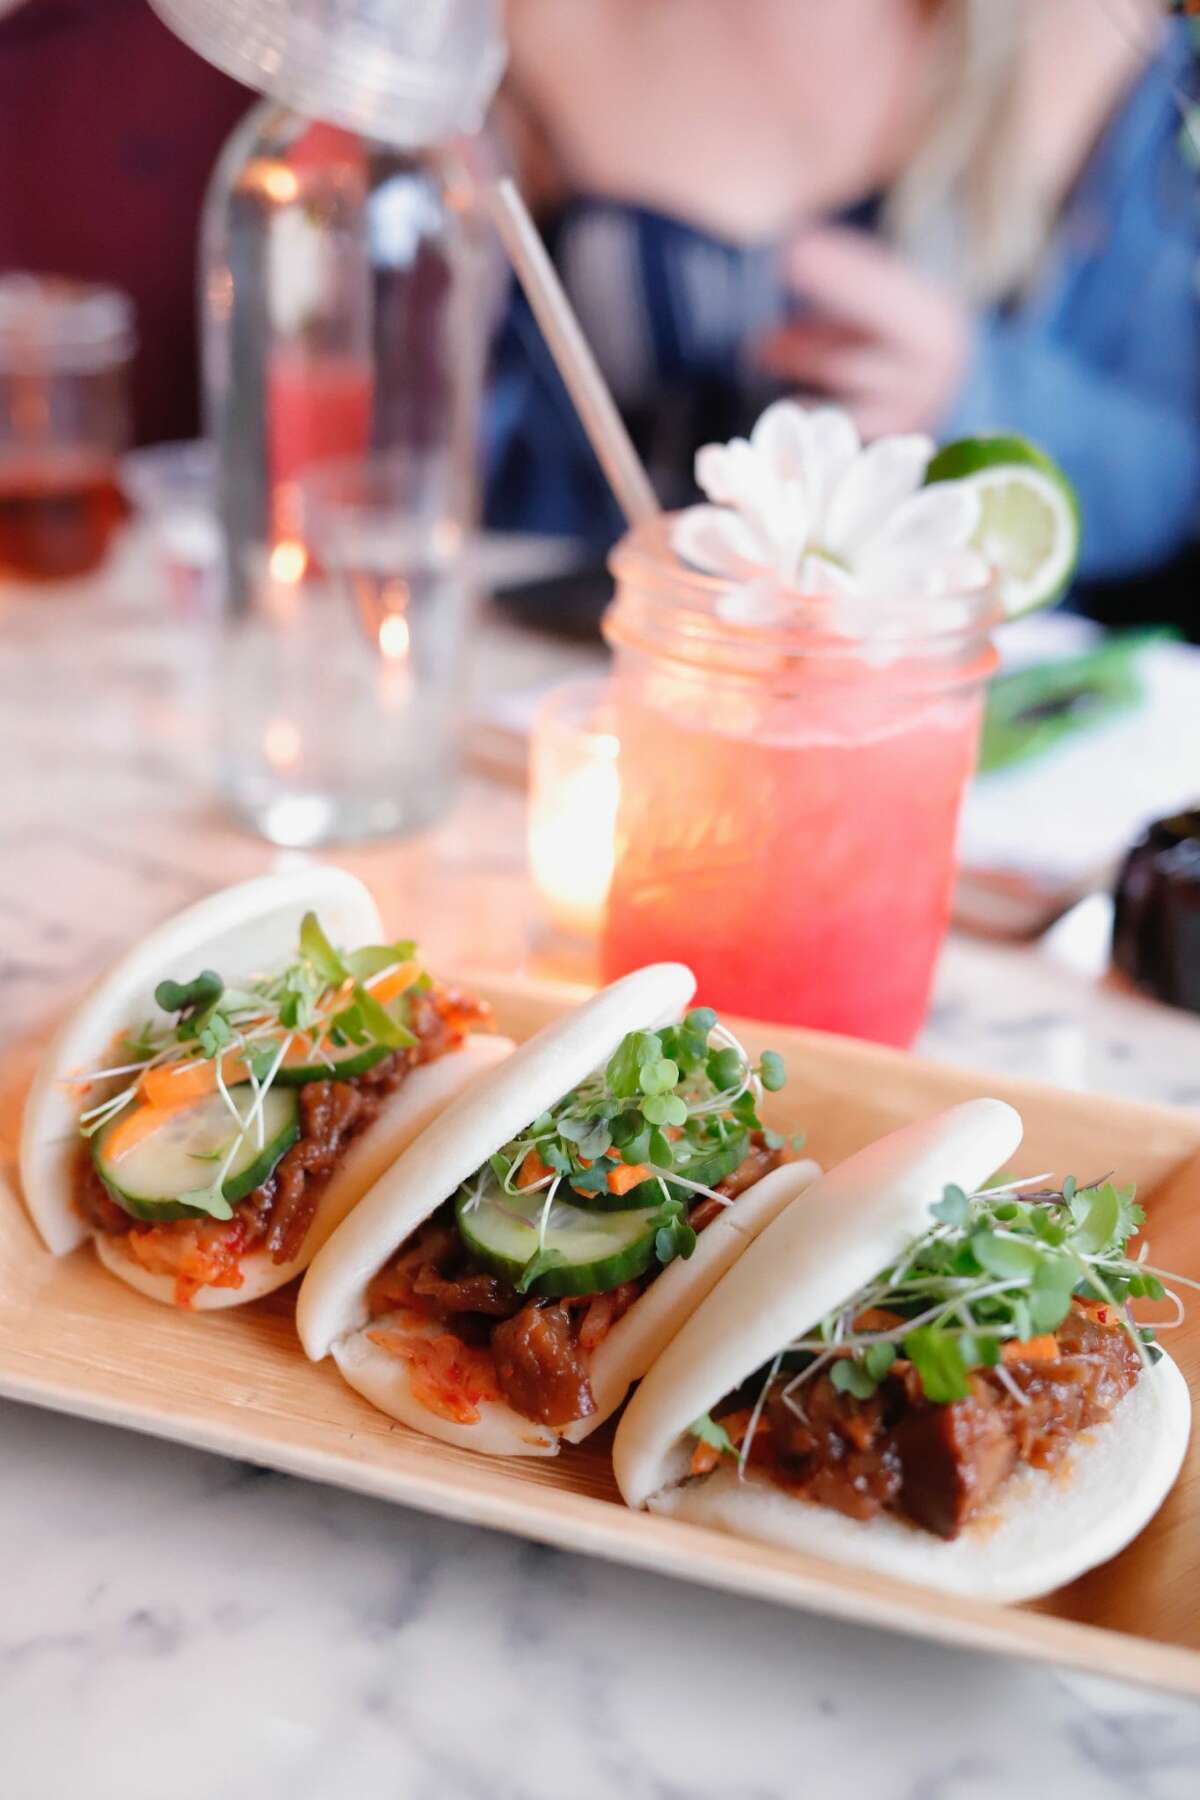 Bao buns with barbecued jackfruit at Troy Beer Garden in Troy. (Konrad Odhiambo/for the Times Union.)